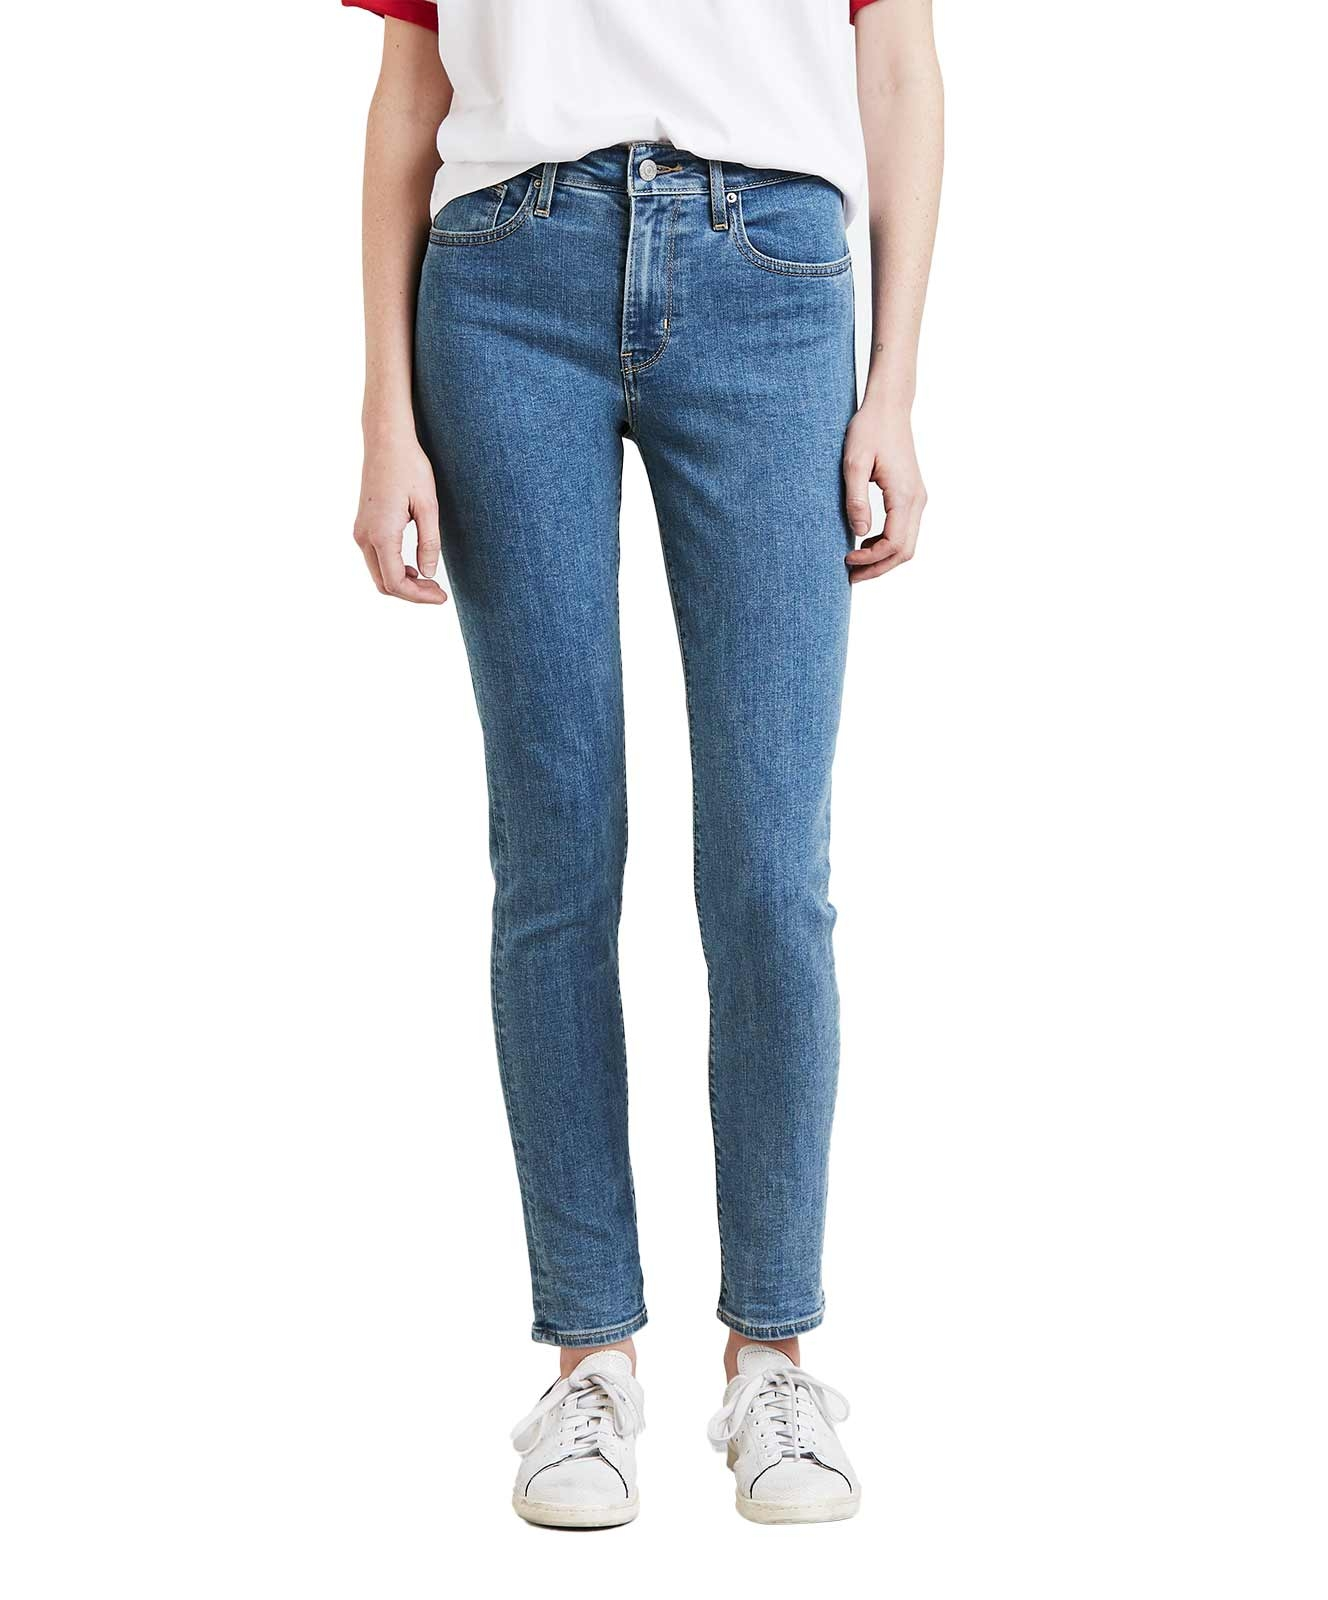 Hosen - Levis 721 High Rise Skinny Jeans in Stonewash  - Onlineshop Jeans Meile